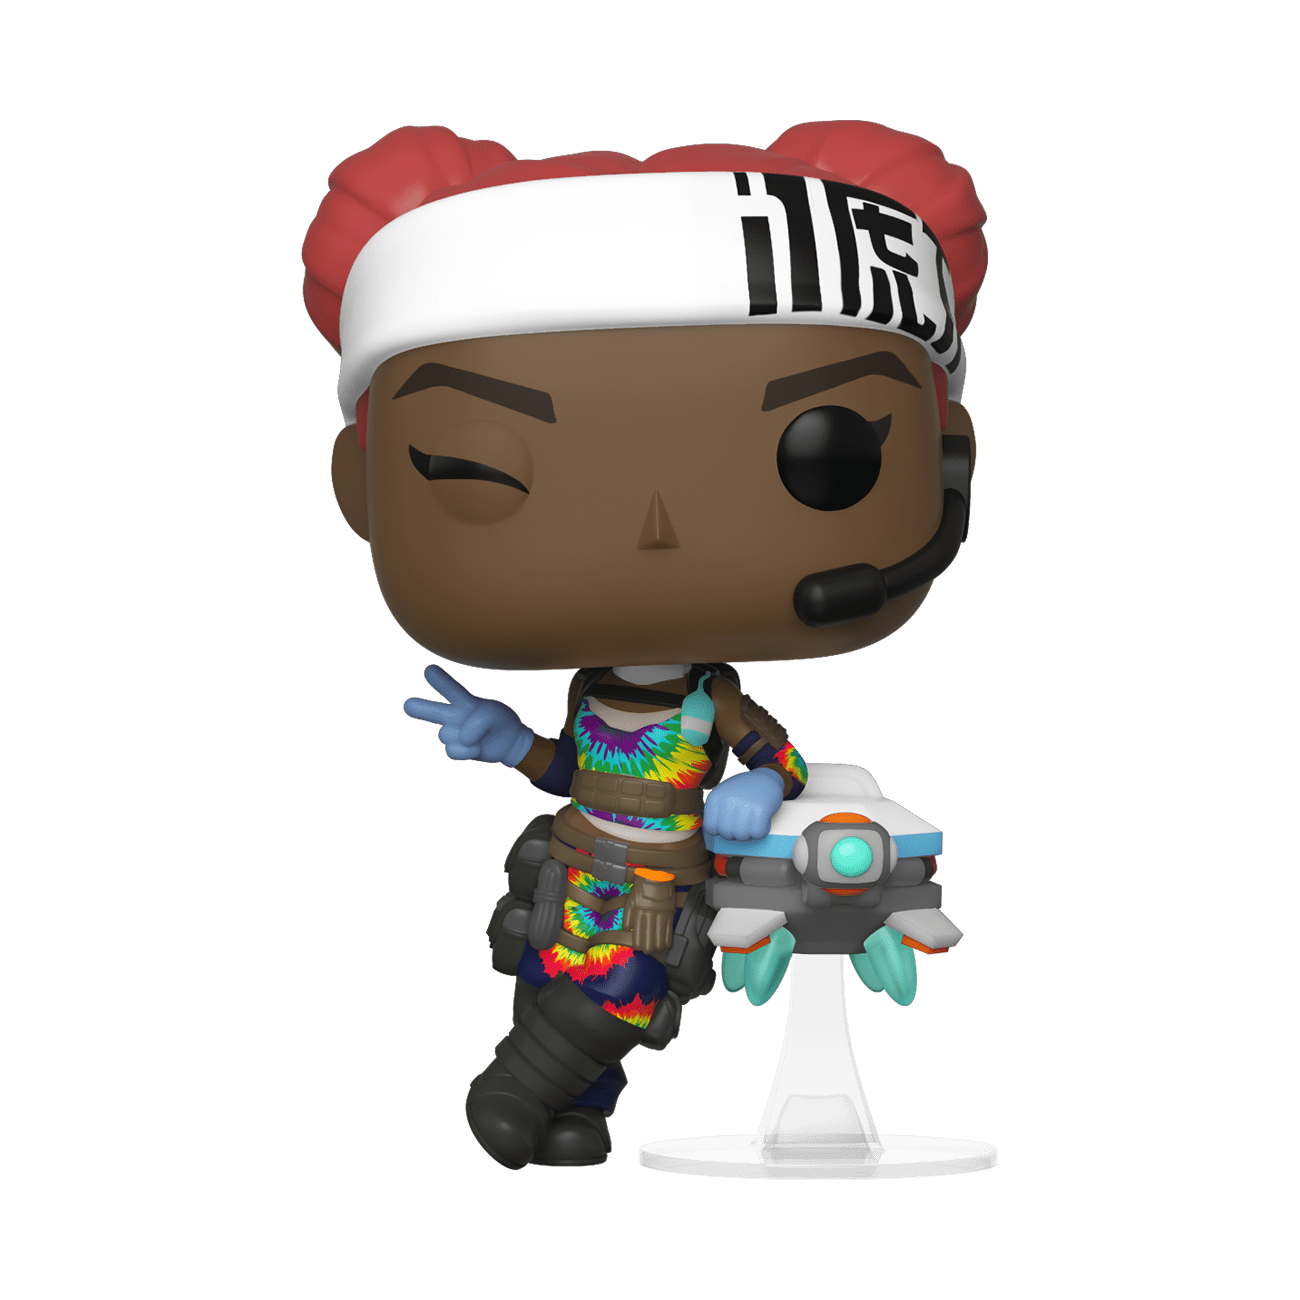 Funko POP! Games: Apex Legends - Lifeline Tied Dye - Walmart Exclusive